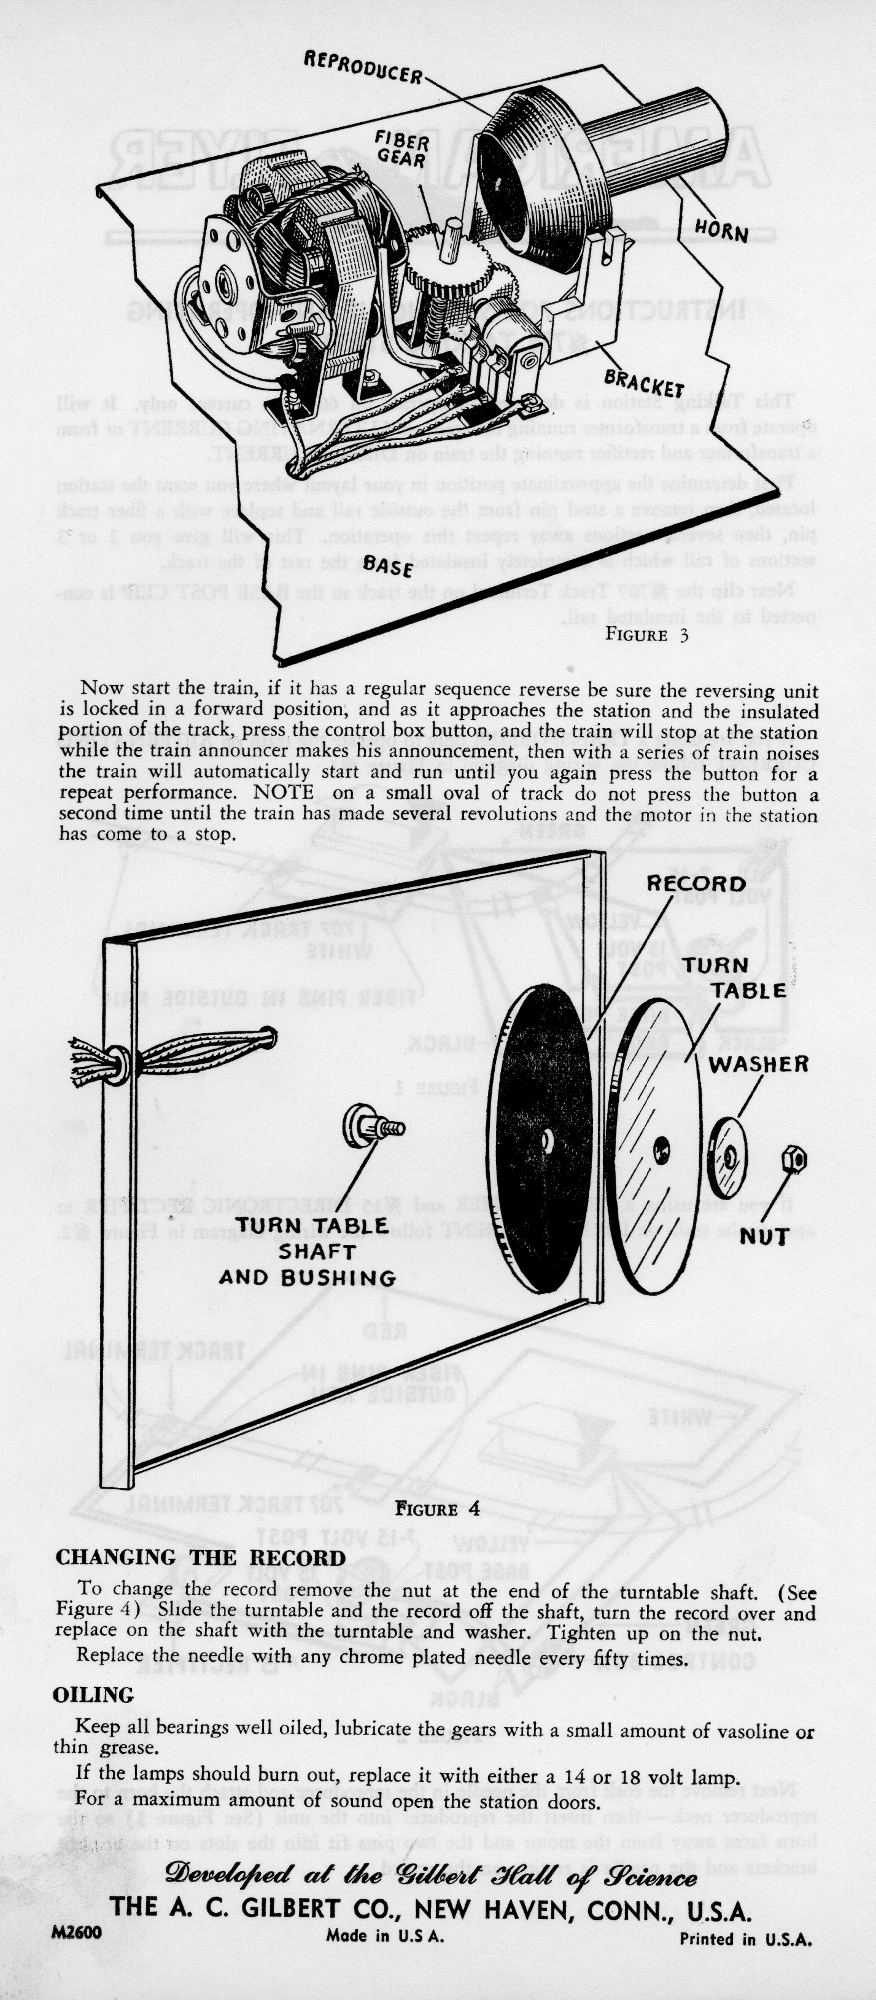 Instructions for Setting Up and Operating No. 755 Talking Station  - Page 2